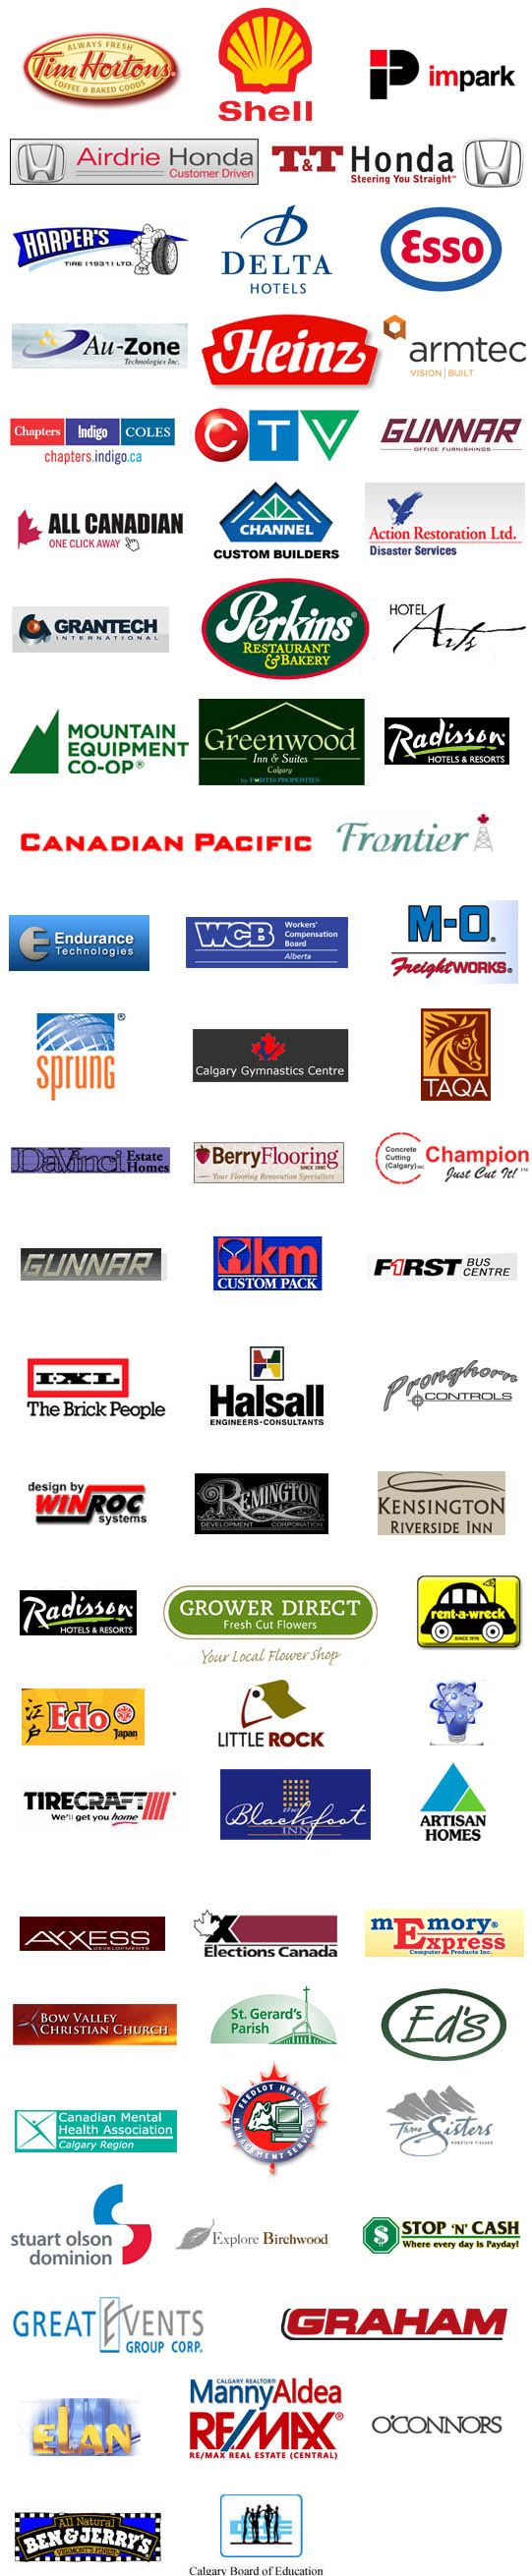 our security system clients include Tim Hortons, Elections Canada, Taqa Oil, Radisson Hotels, and many others